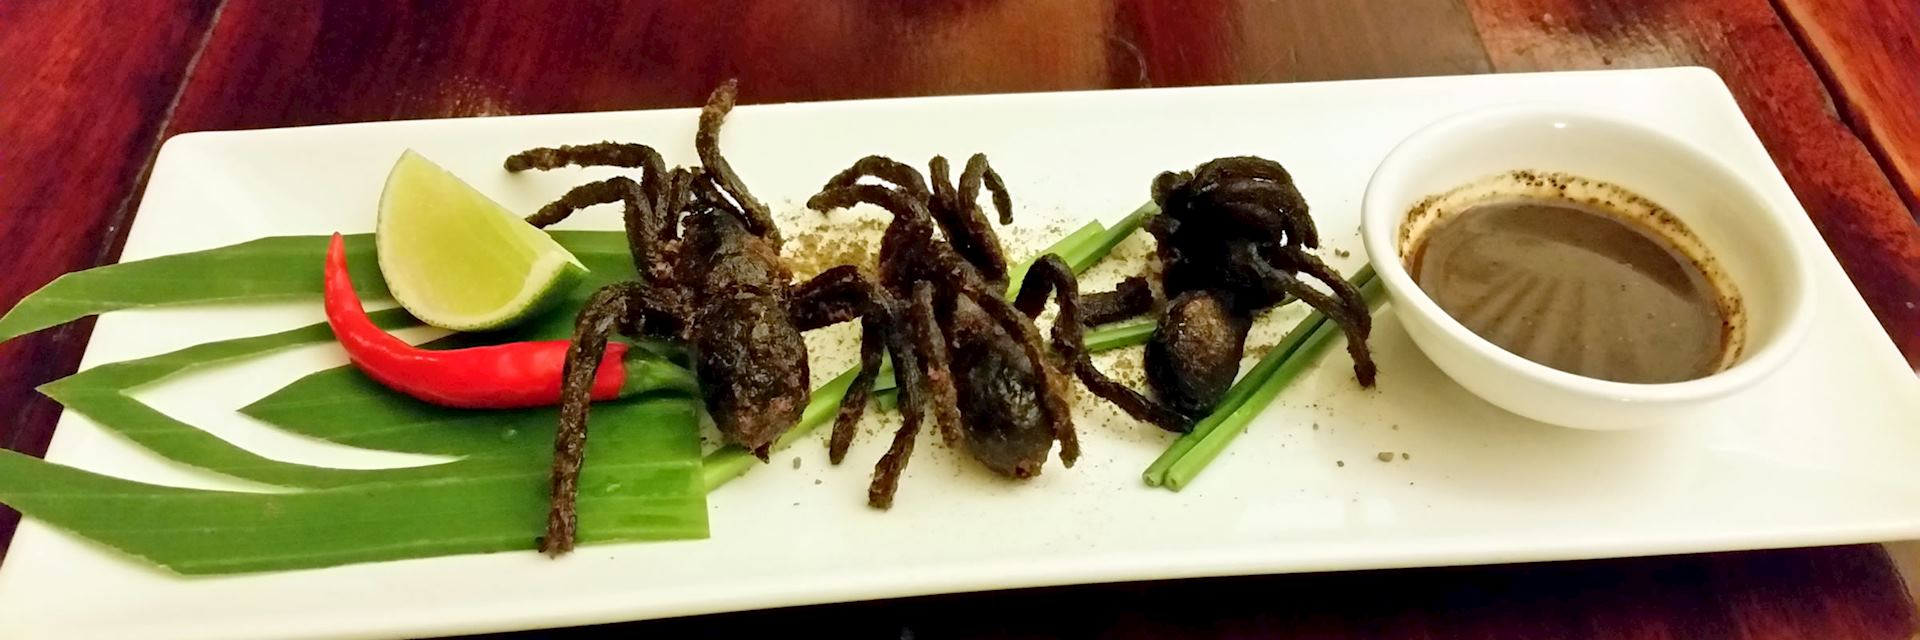 Deep fried spiders